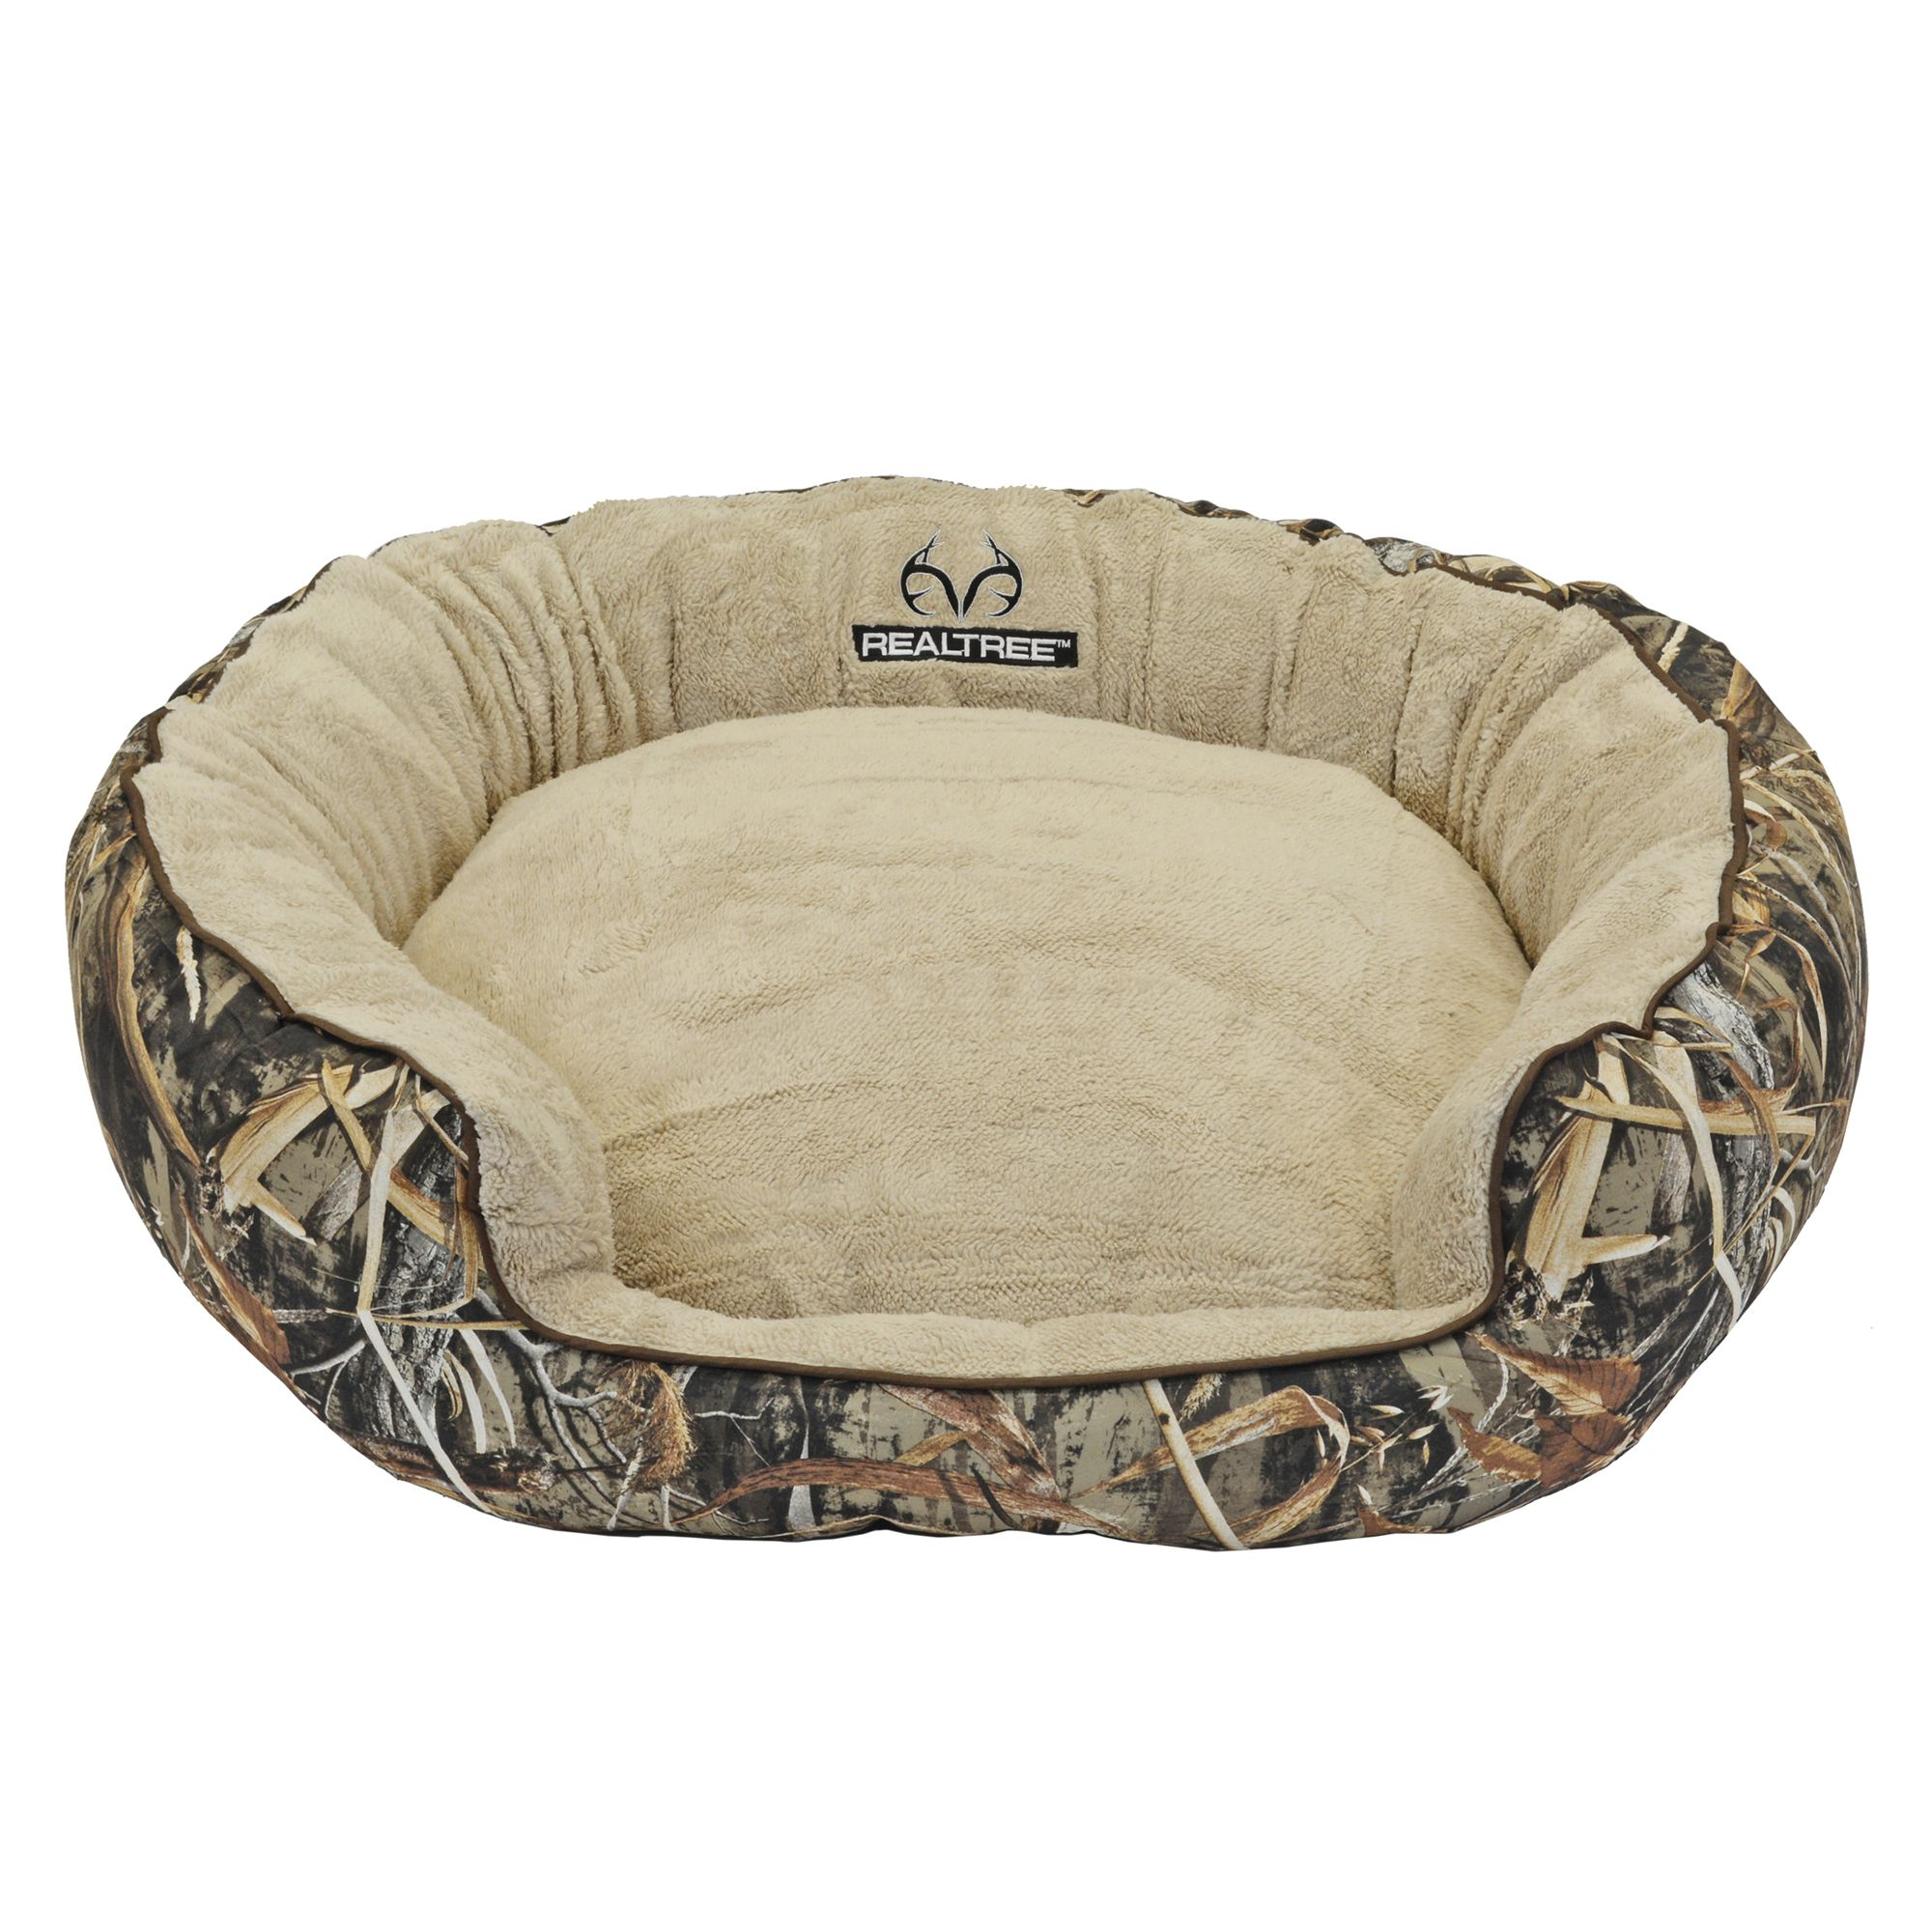 Realtree Camo Bolster Dog Bed Brown